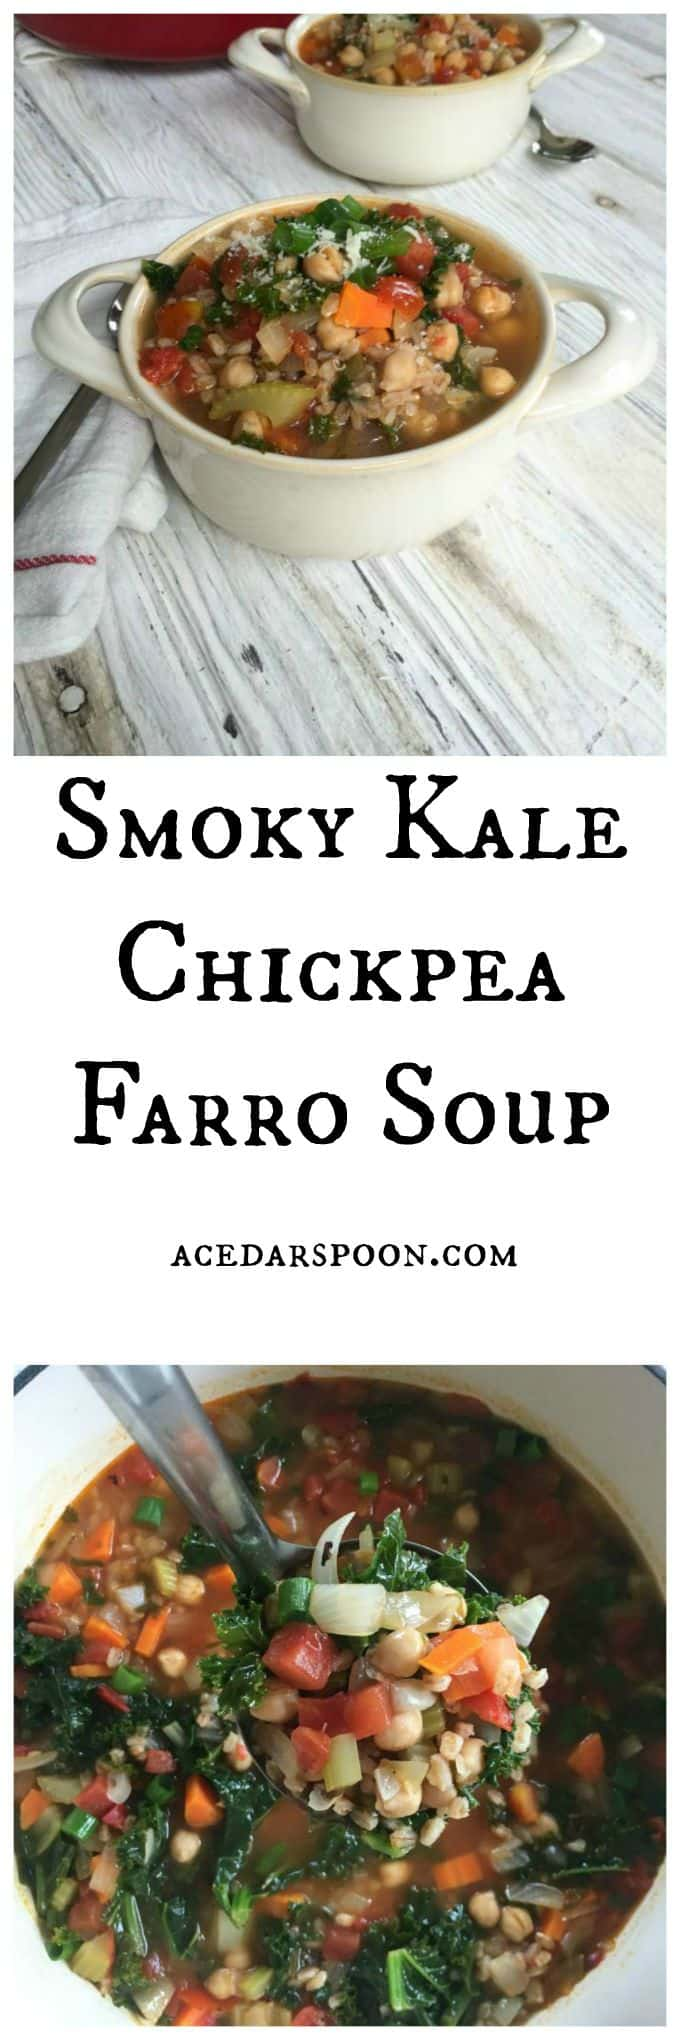 Smoky Kale Chickpea Farro Soup - A Cedar Spoon